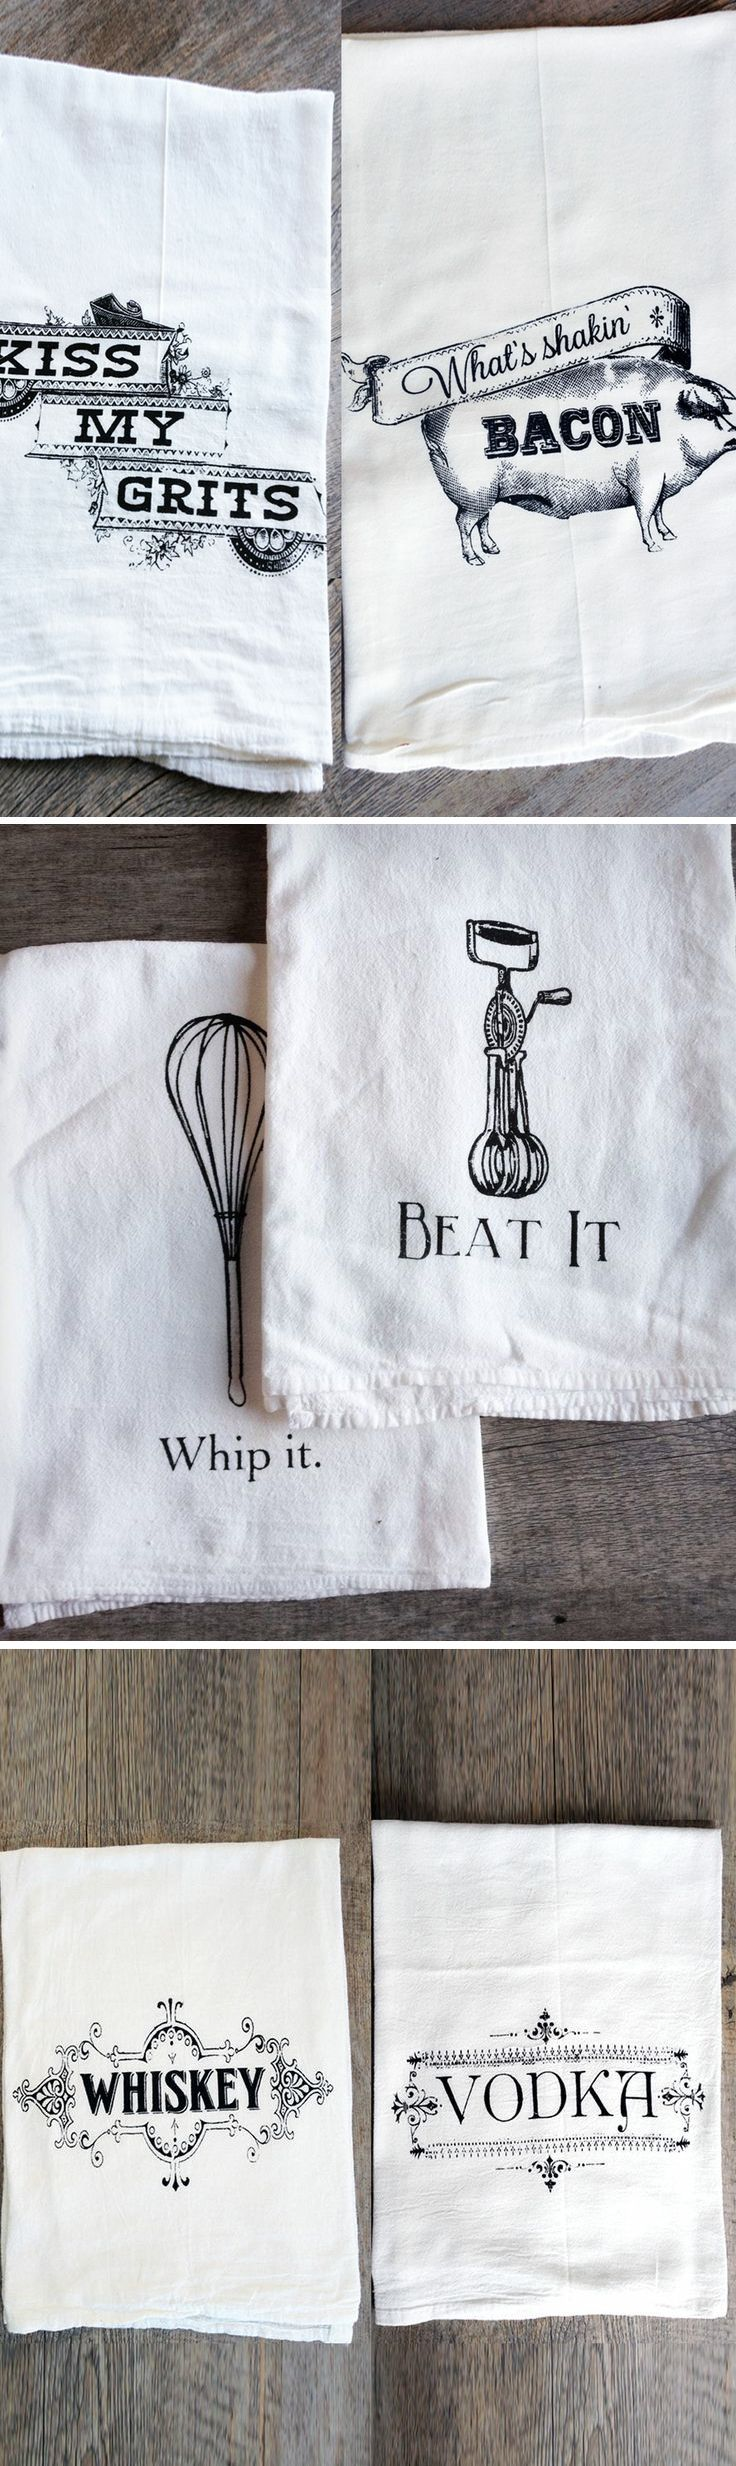 foodie cloth napkins for the home | Home | Pinterest | Napkins ...